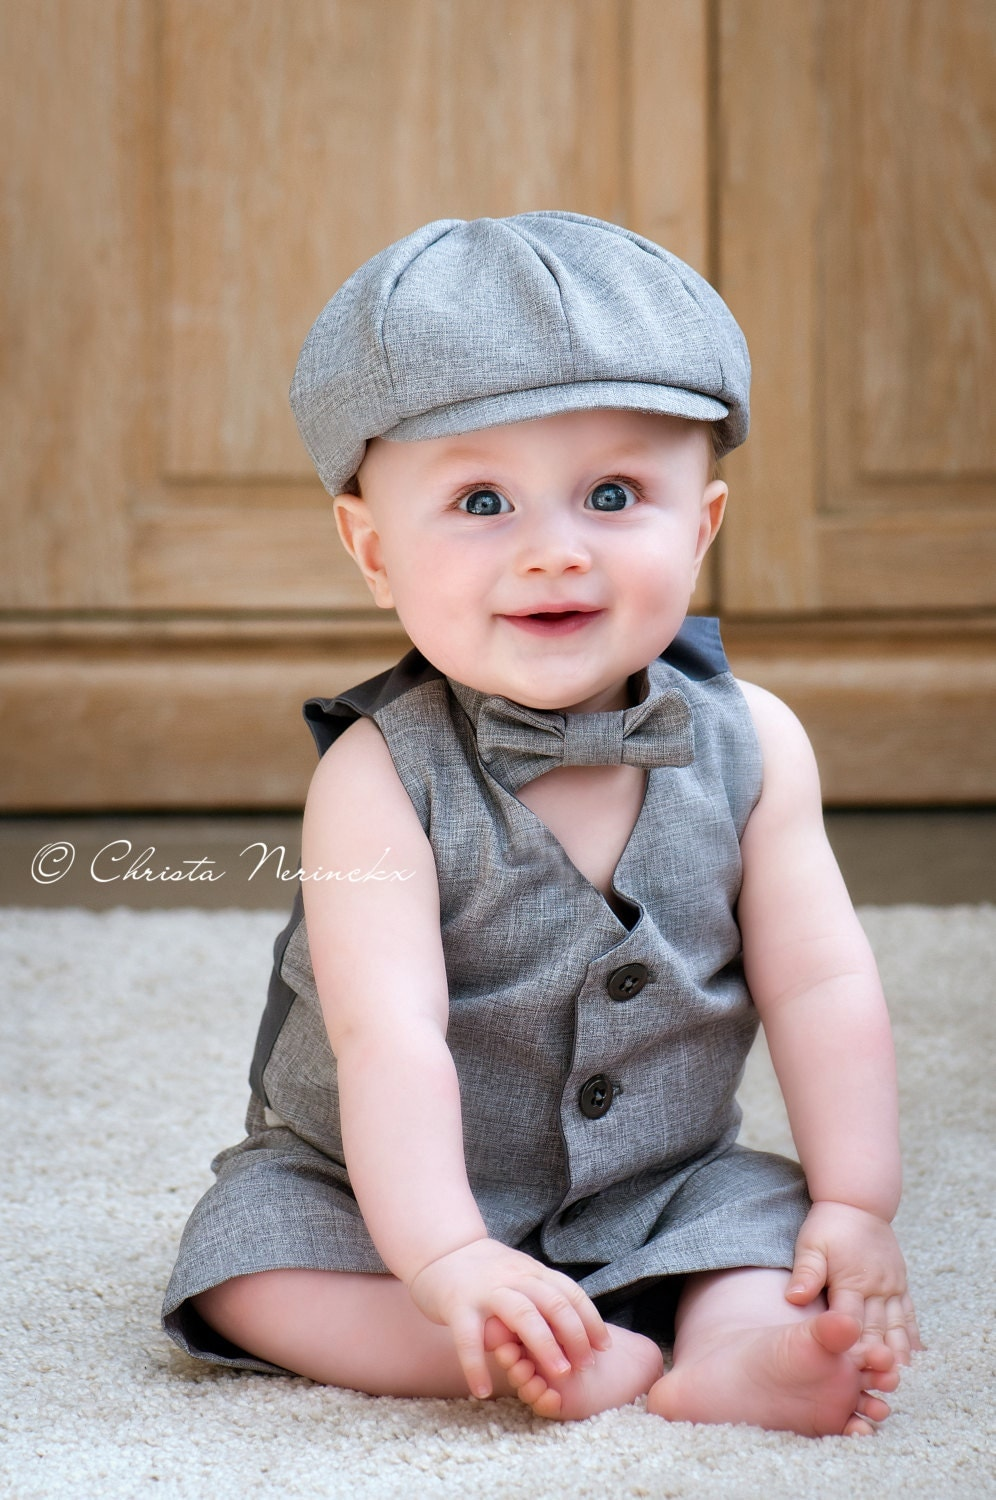 You've searched for Baby Boys' Clothing! Etsy has thousands of unique options to choose from, like handmade goods, vintage finds, and one-of-a-kind gifts. Our global marketplace of sellers can help you find extraordinary items at any price range.